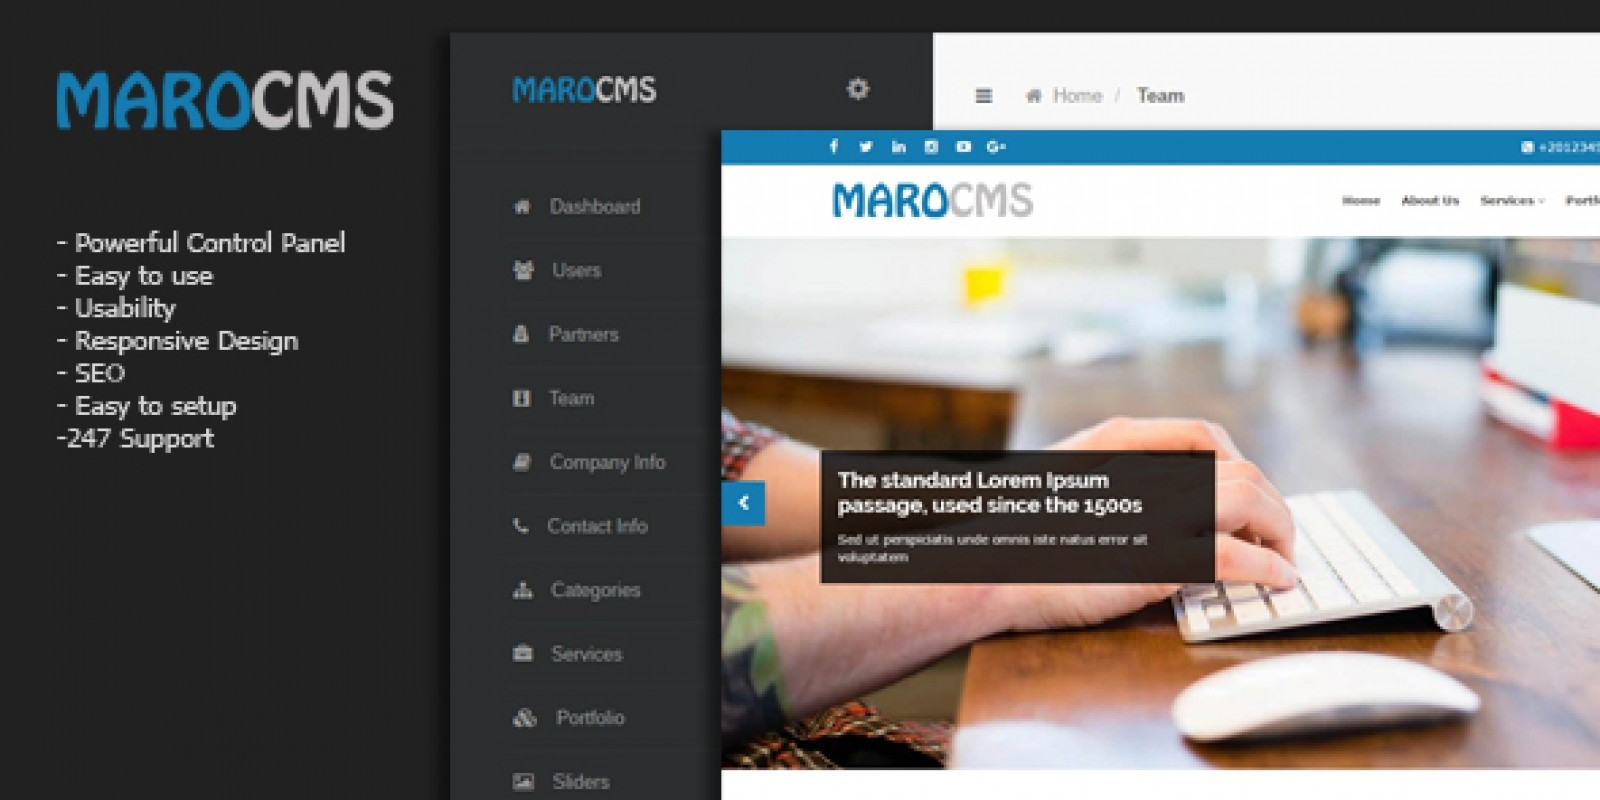 MaroCMS - Lightweight Business CMS PHP